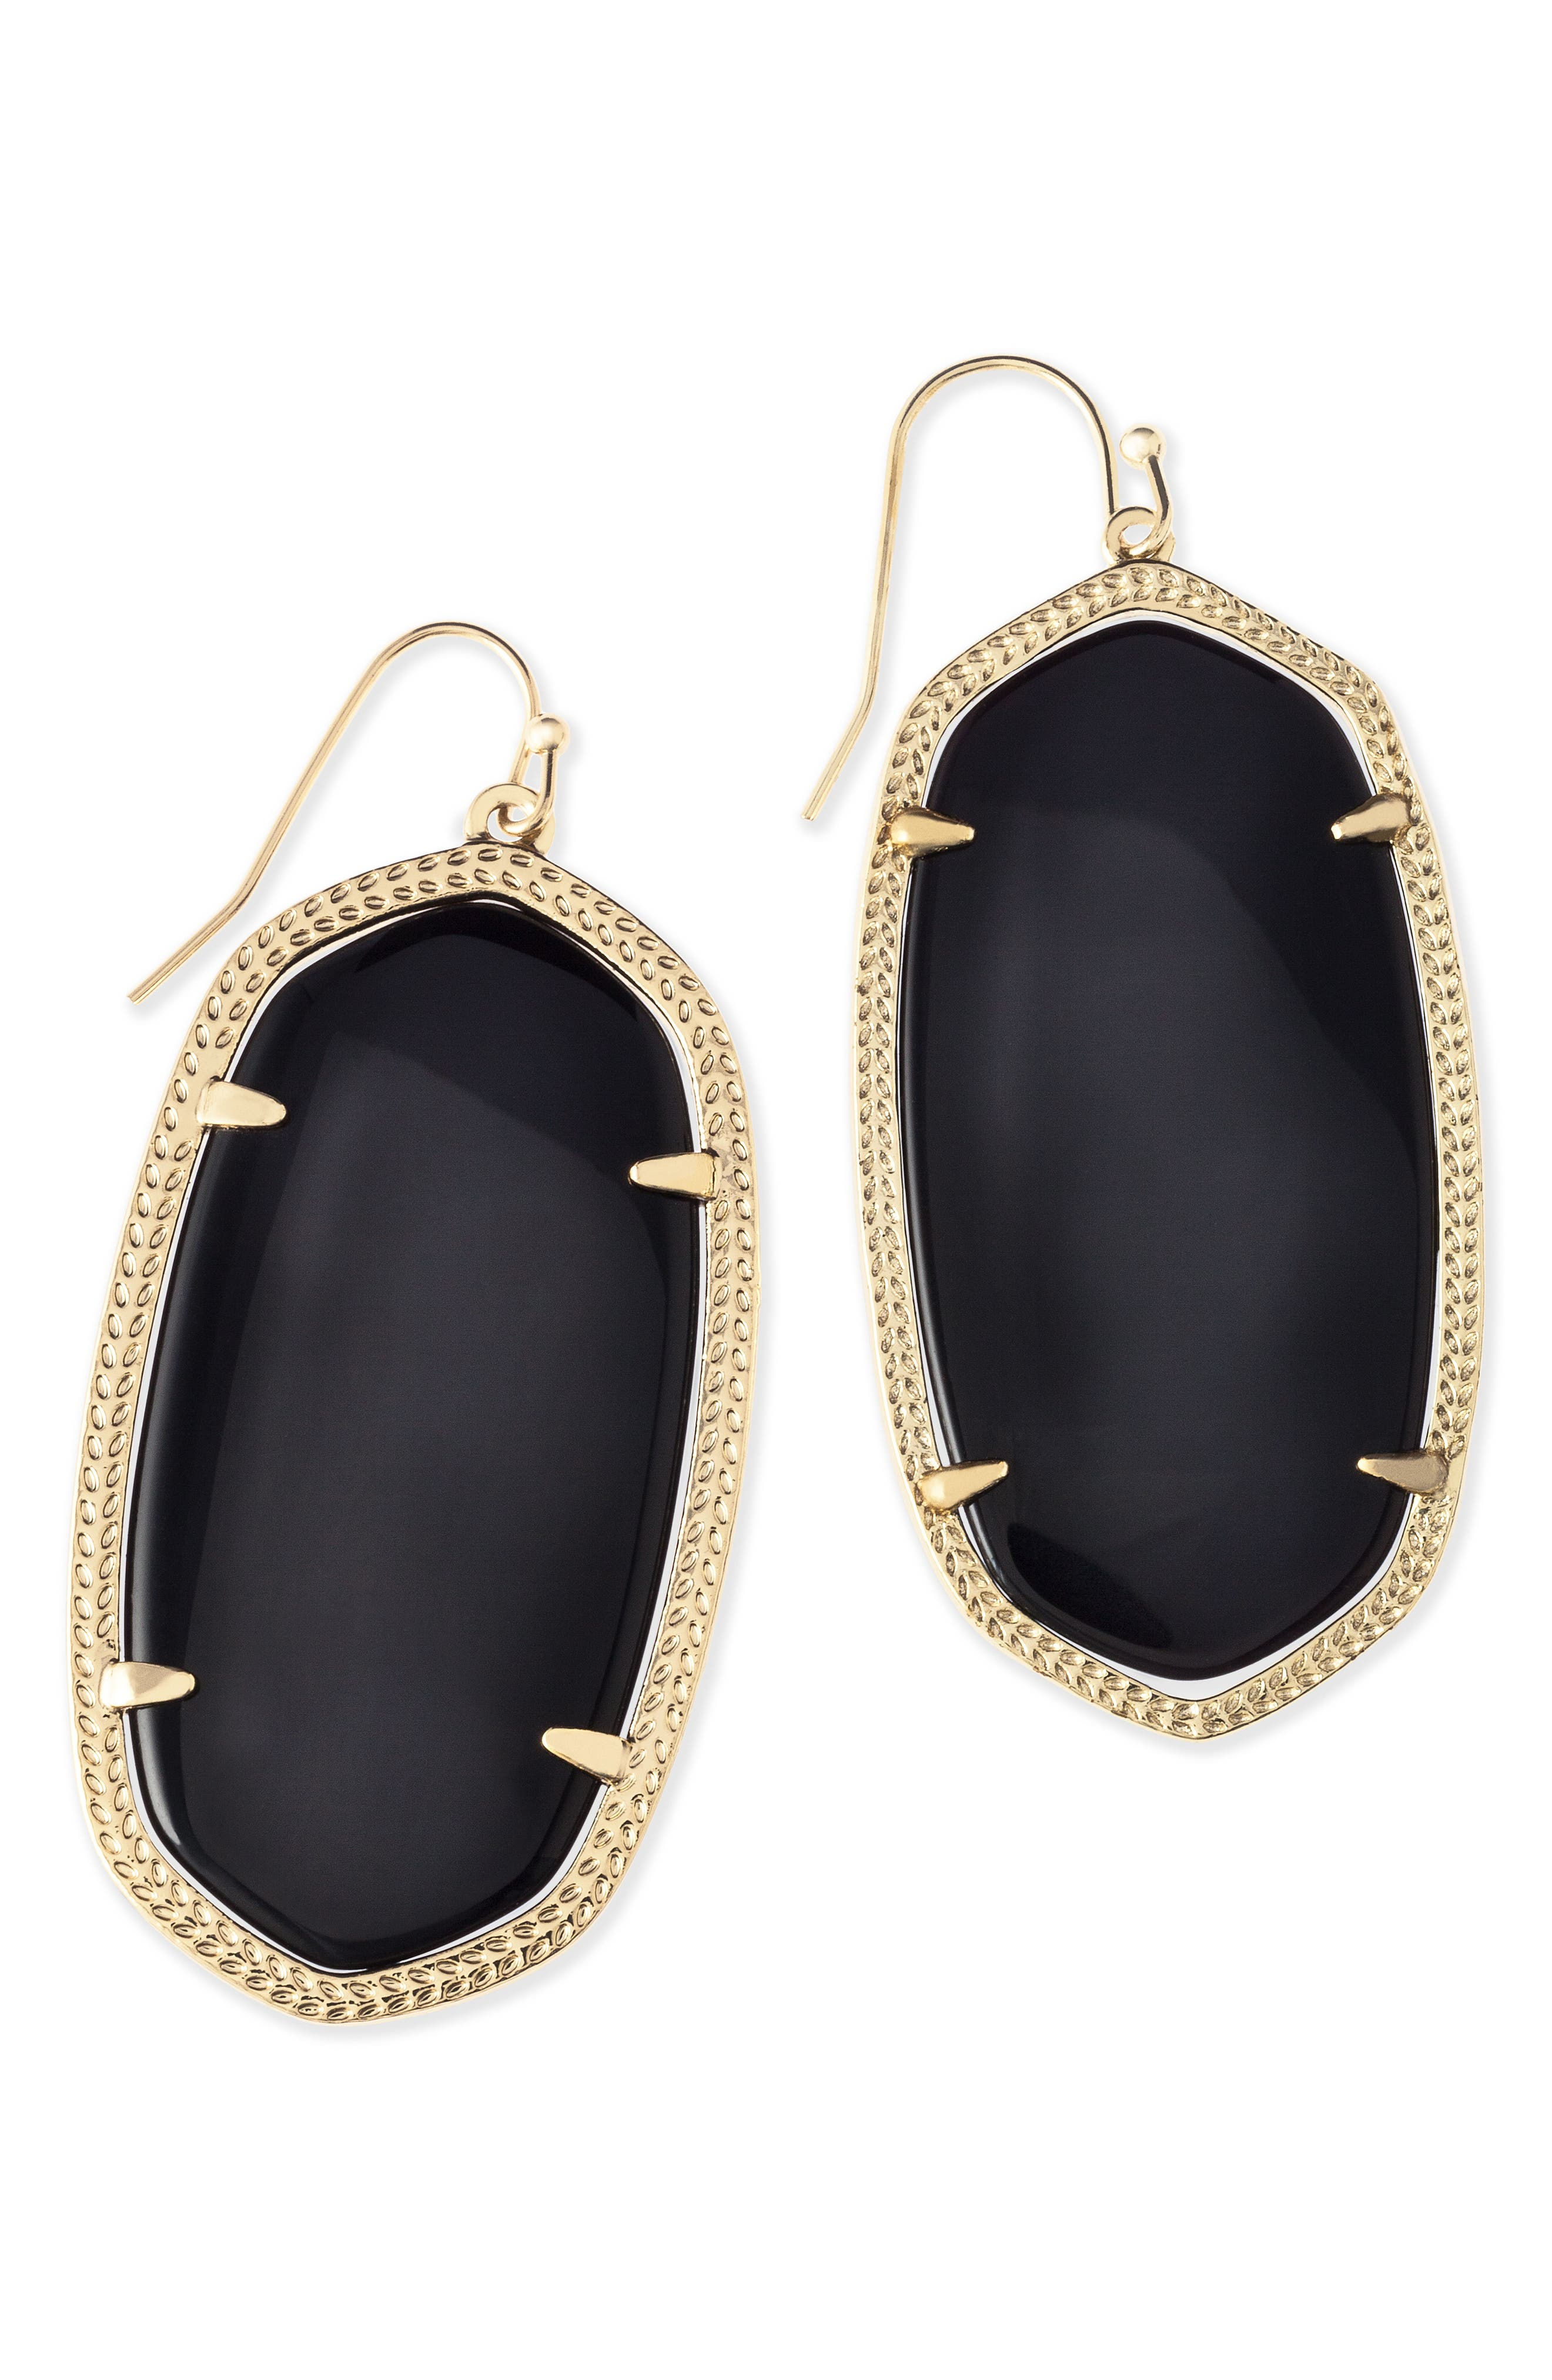 Danielle - Large Oval Statement Earrings,                             Alternate thumbnail 4, color,                             001